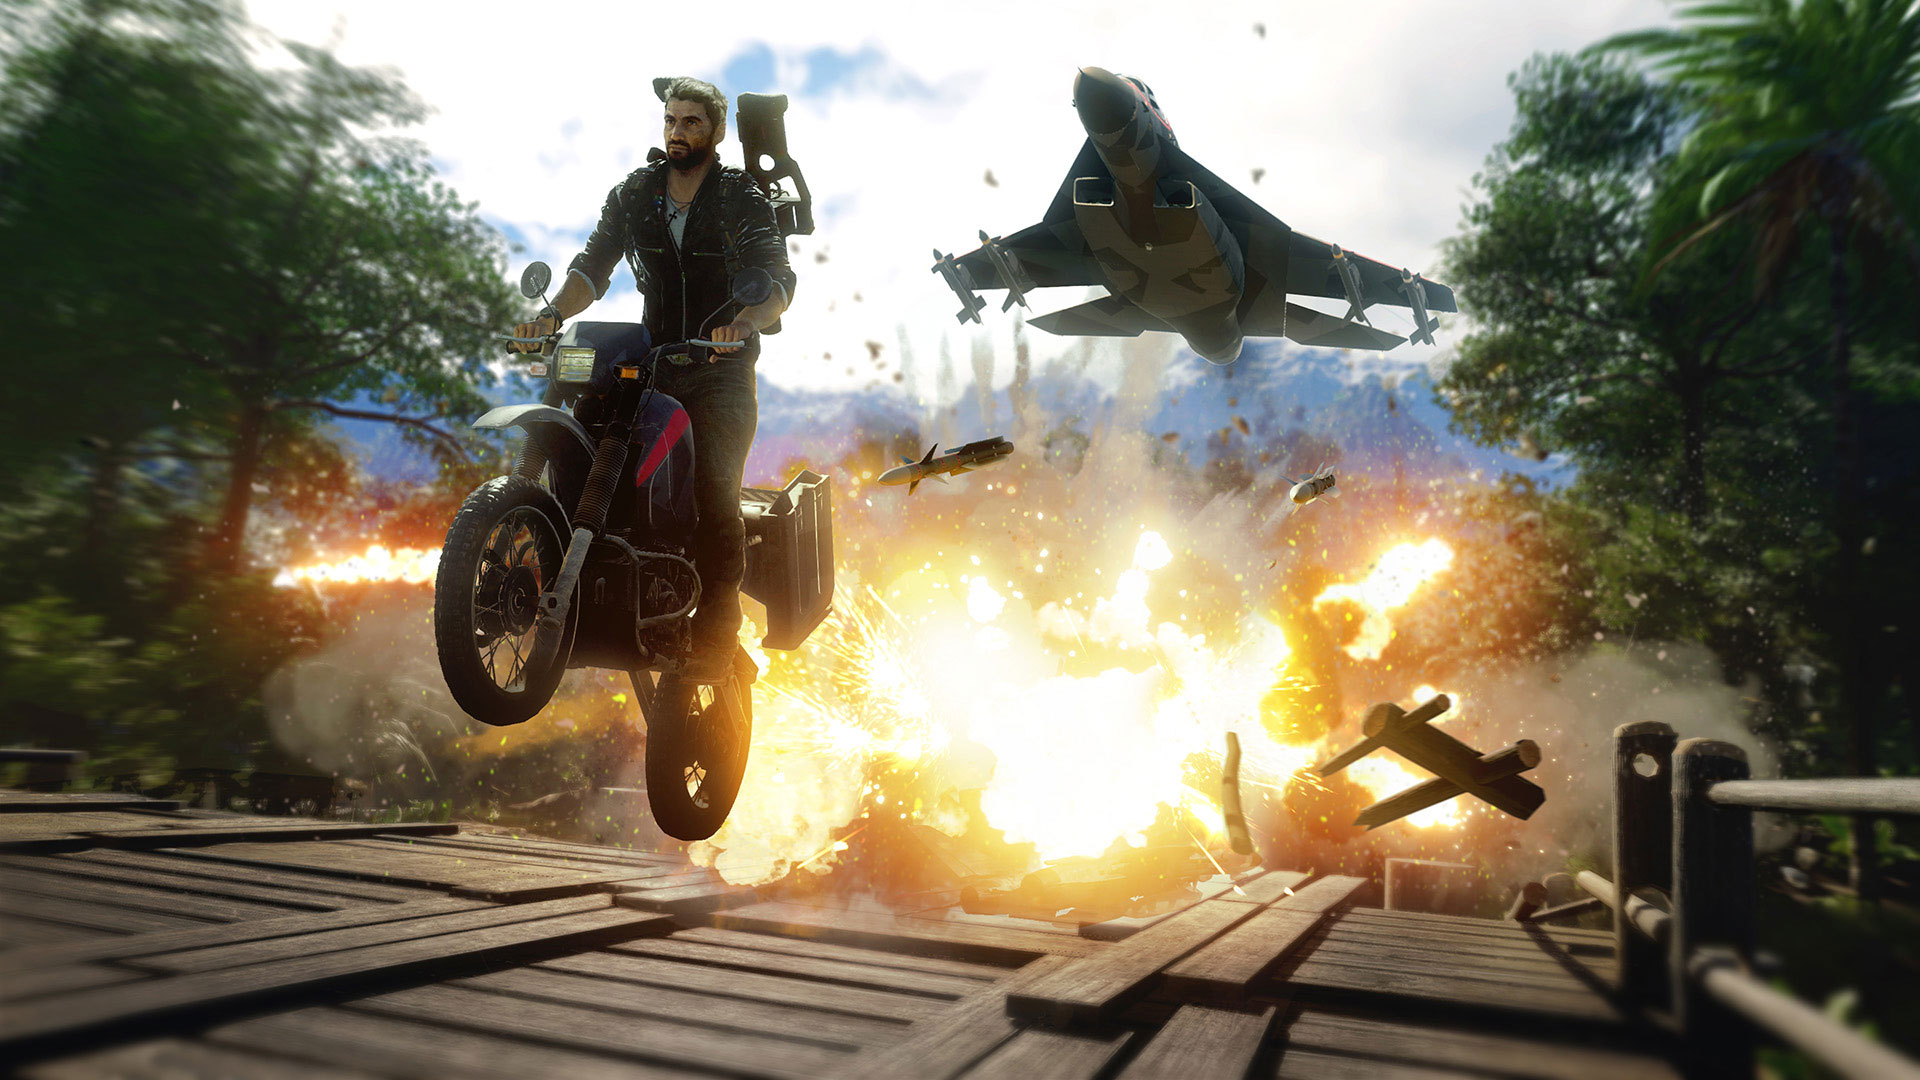 Claim Just Cause 4 for free